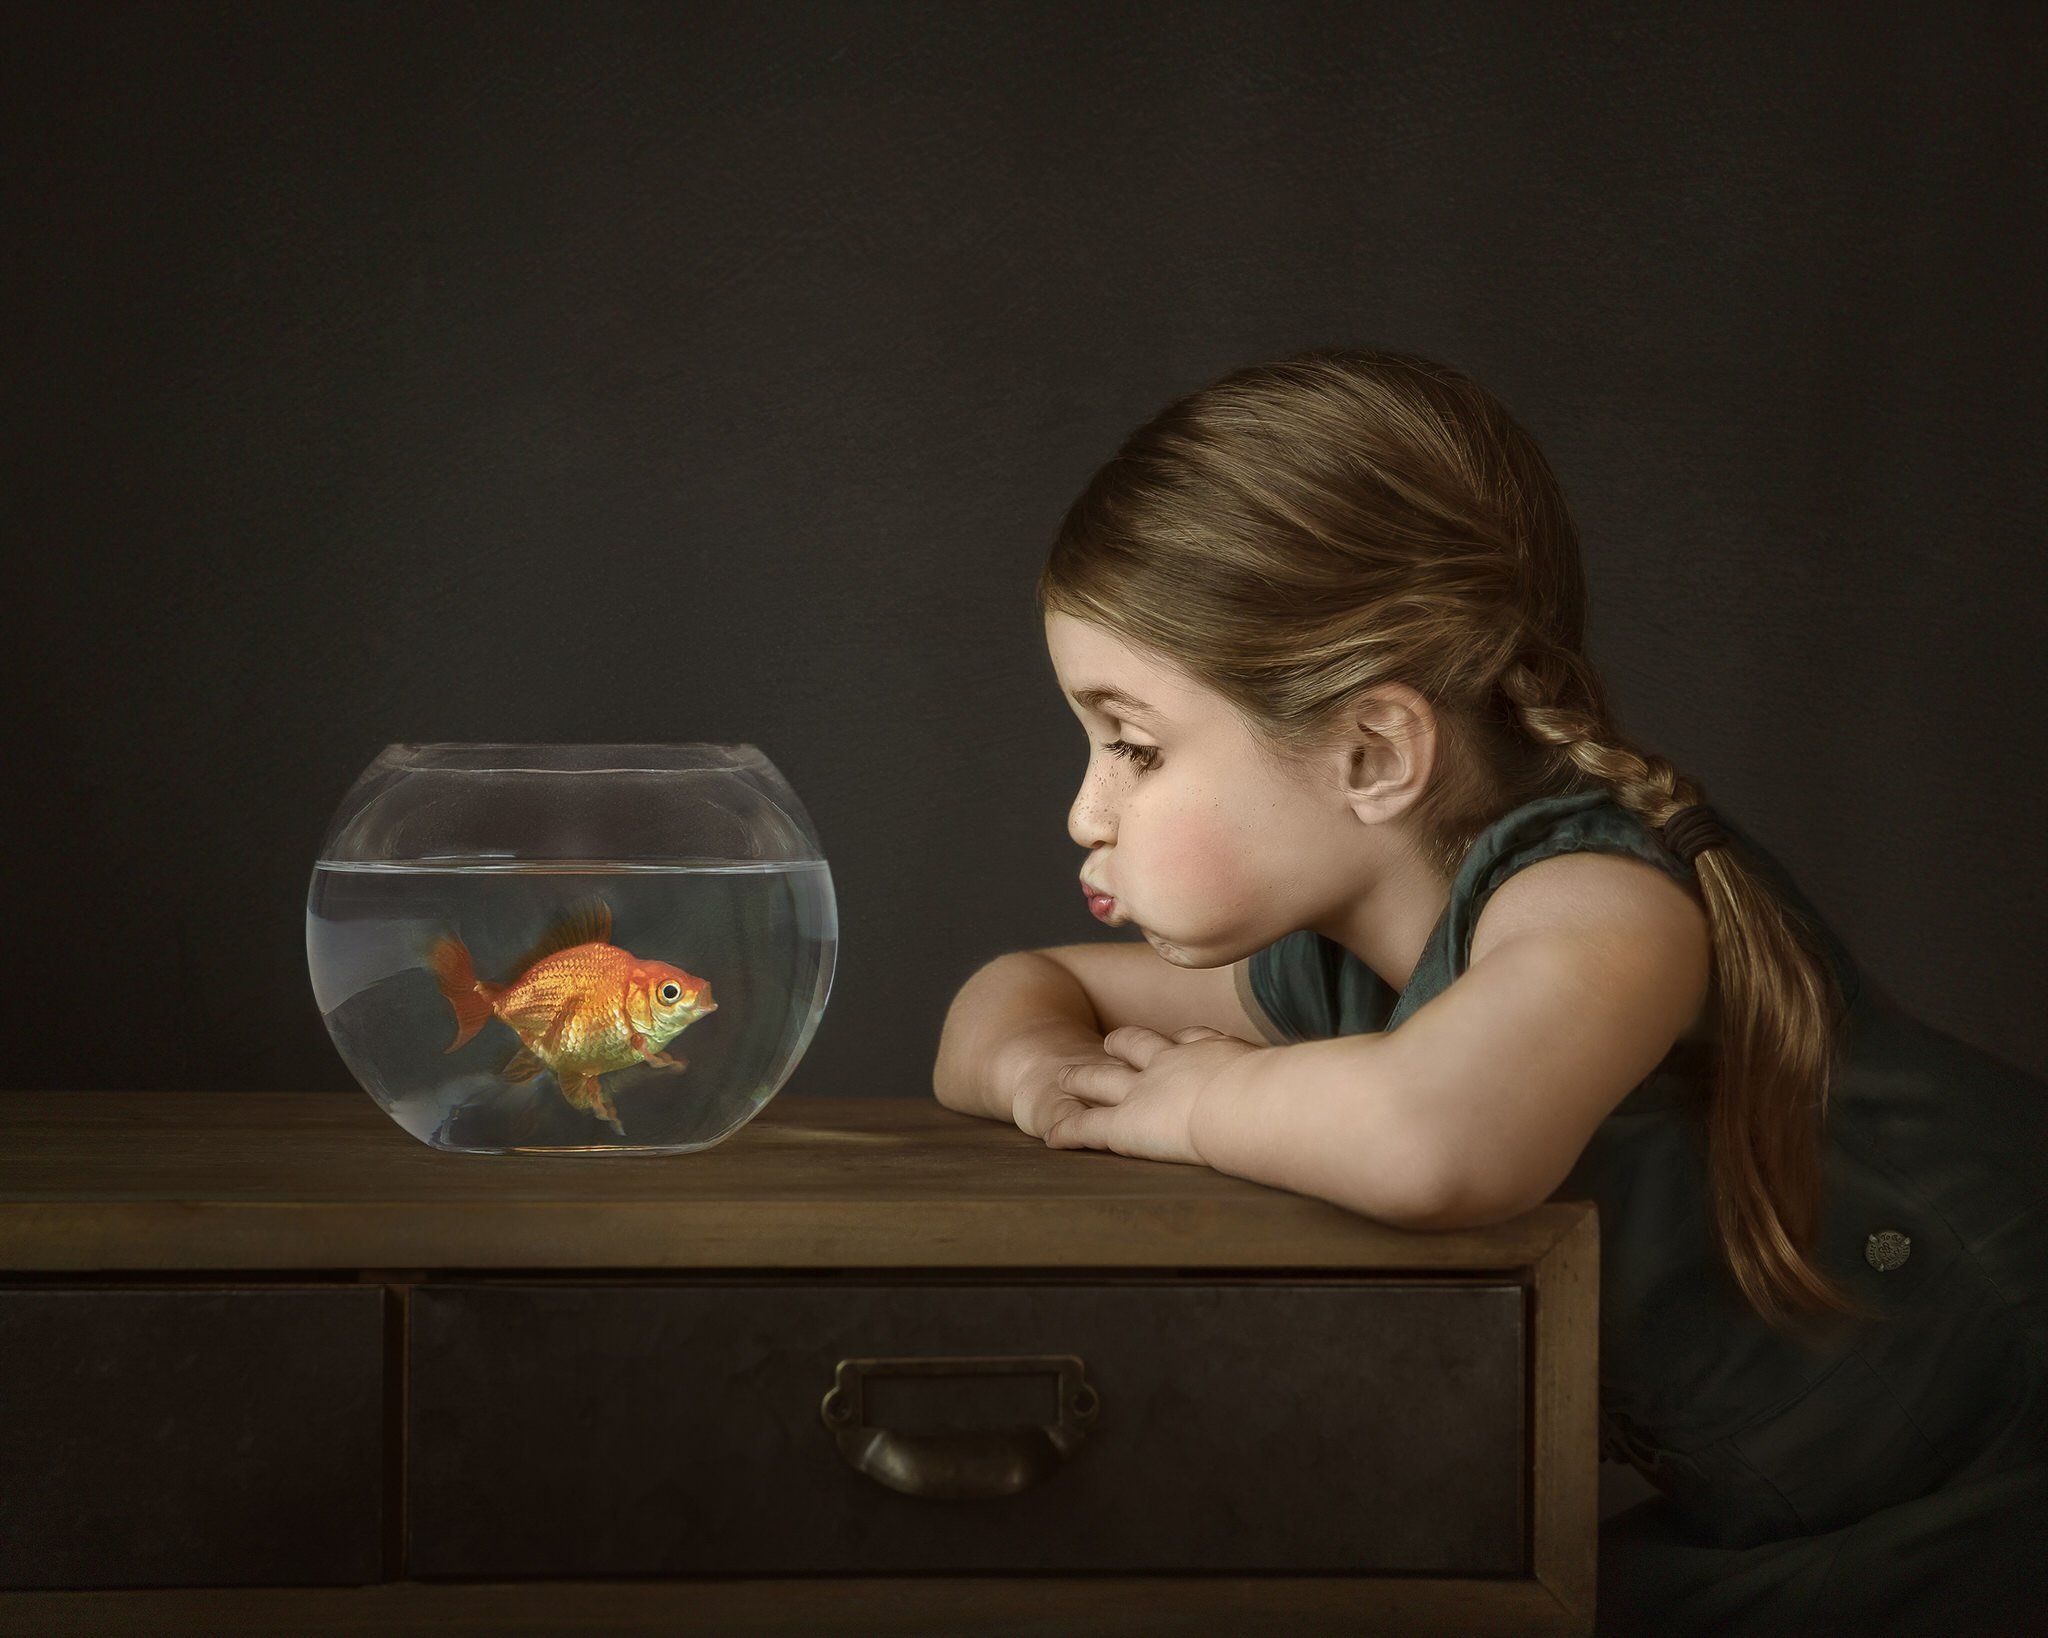 girl making fish lips looking at a goldfish in a bowl